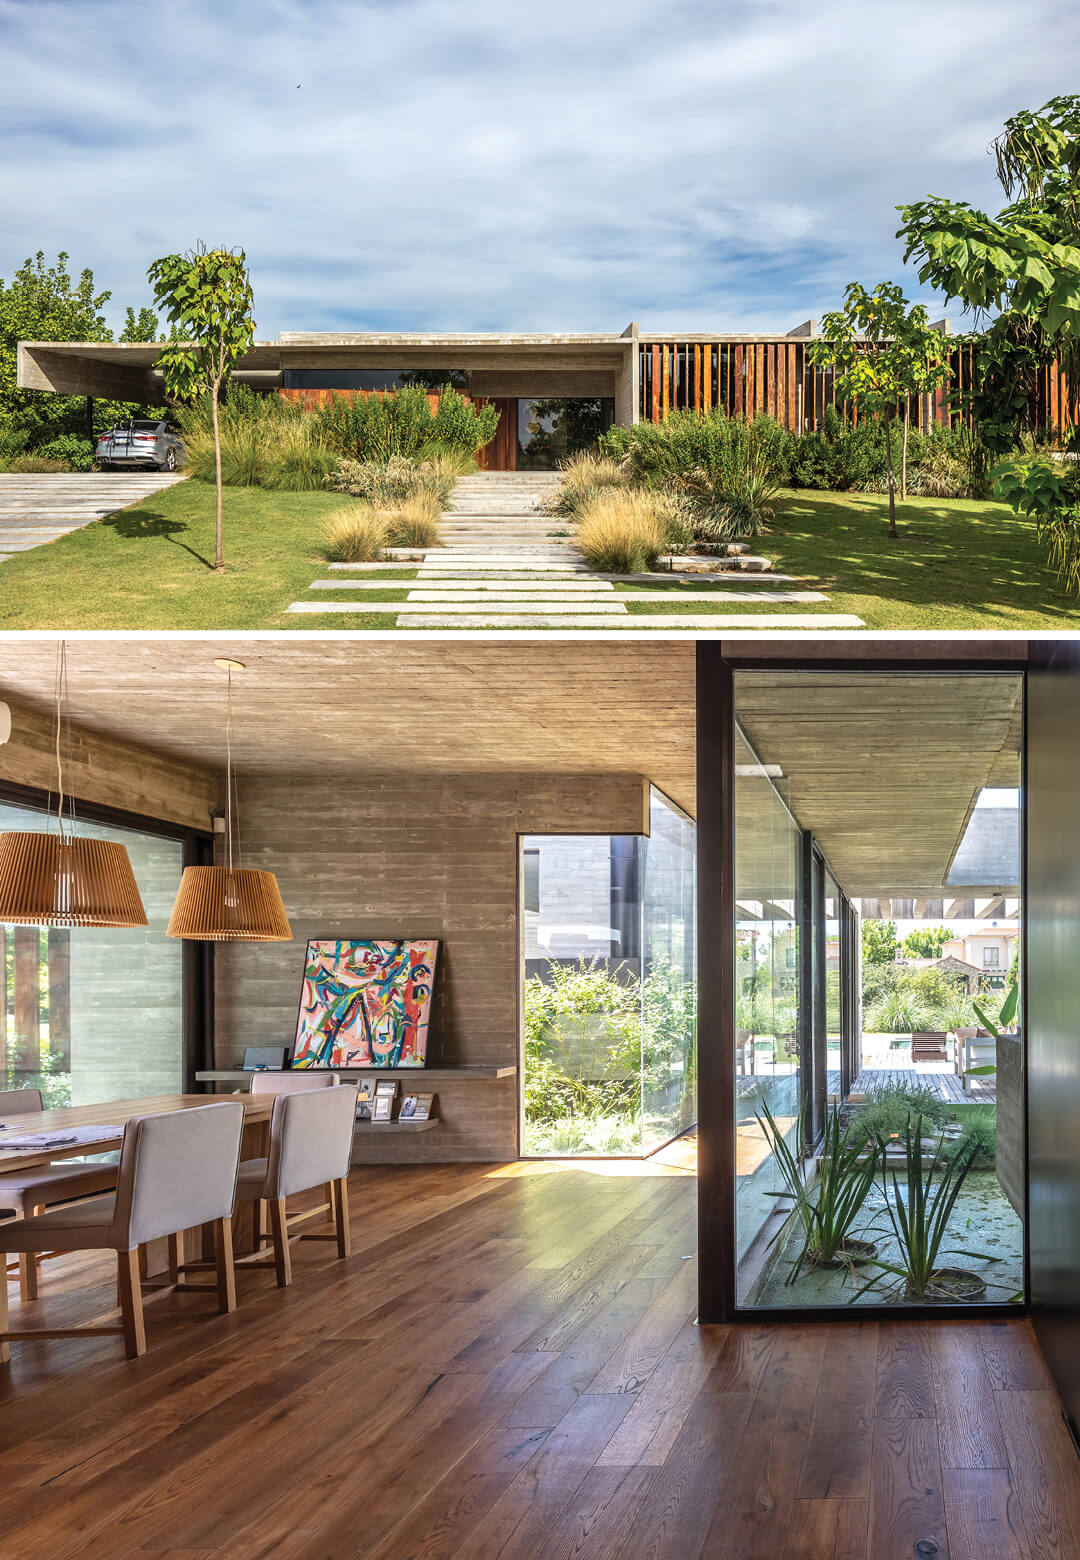 Besonías Almeida Arquitectos has crafted Pilará House, a single-floor home in Pilar, Argentina, that is equal parts rustic and modern | Pilará House by Besonías Almeida Arquitectos | STIRworld